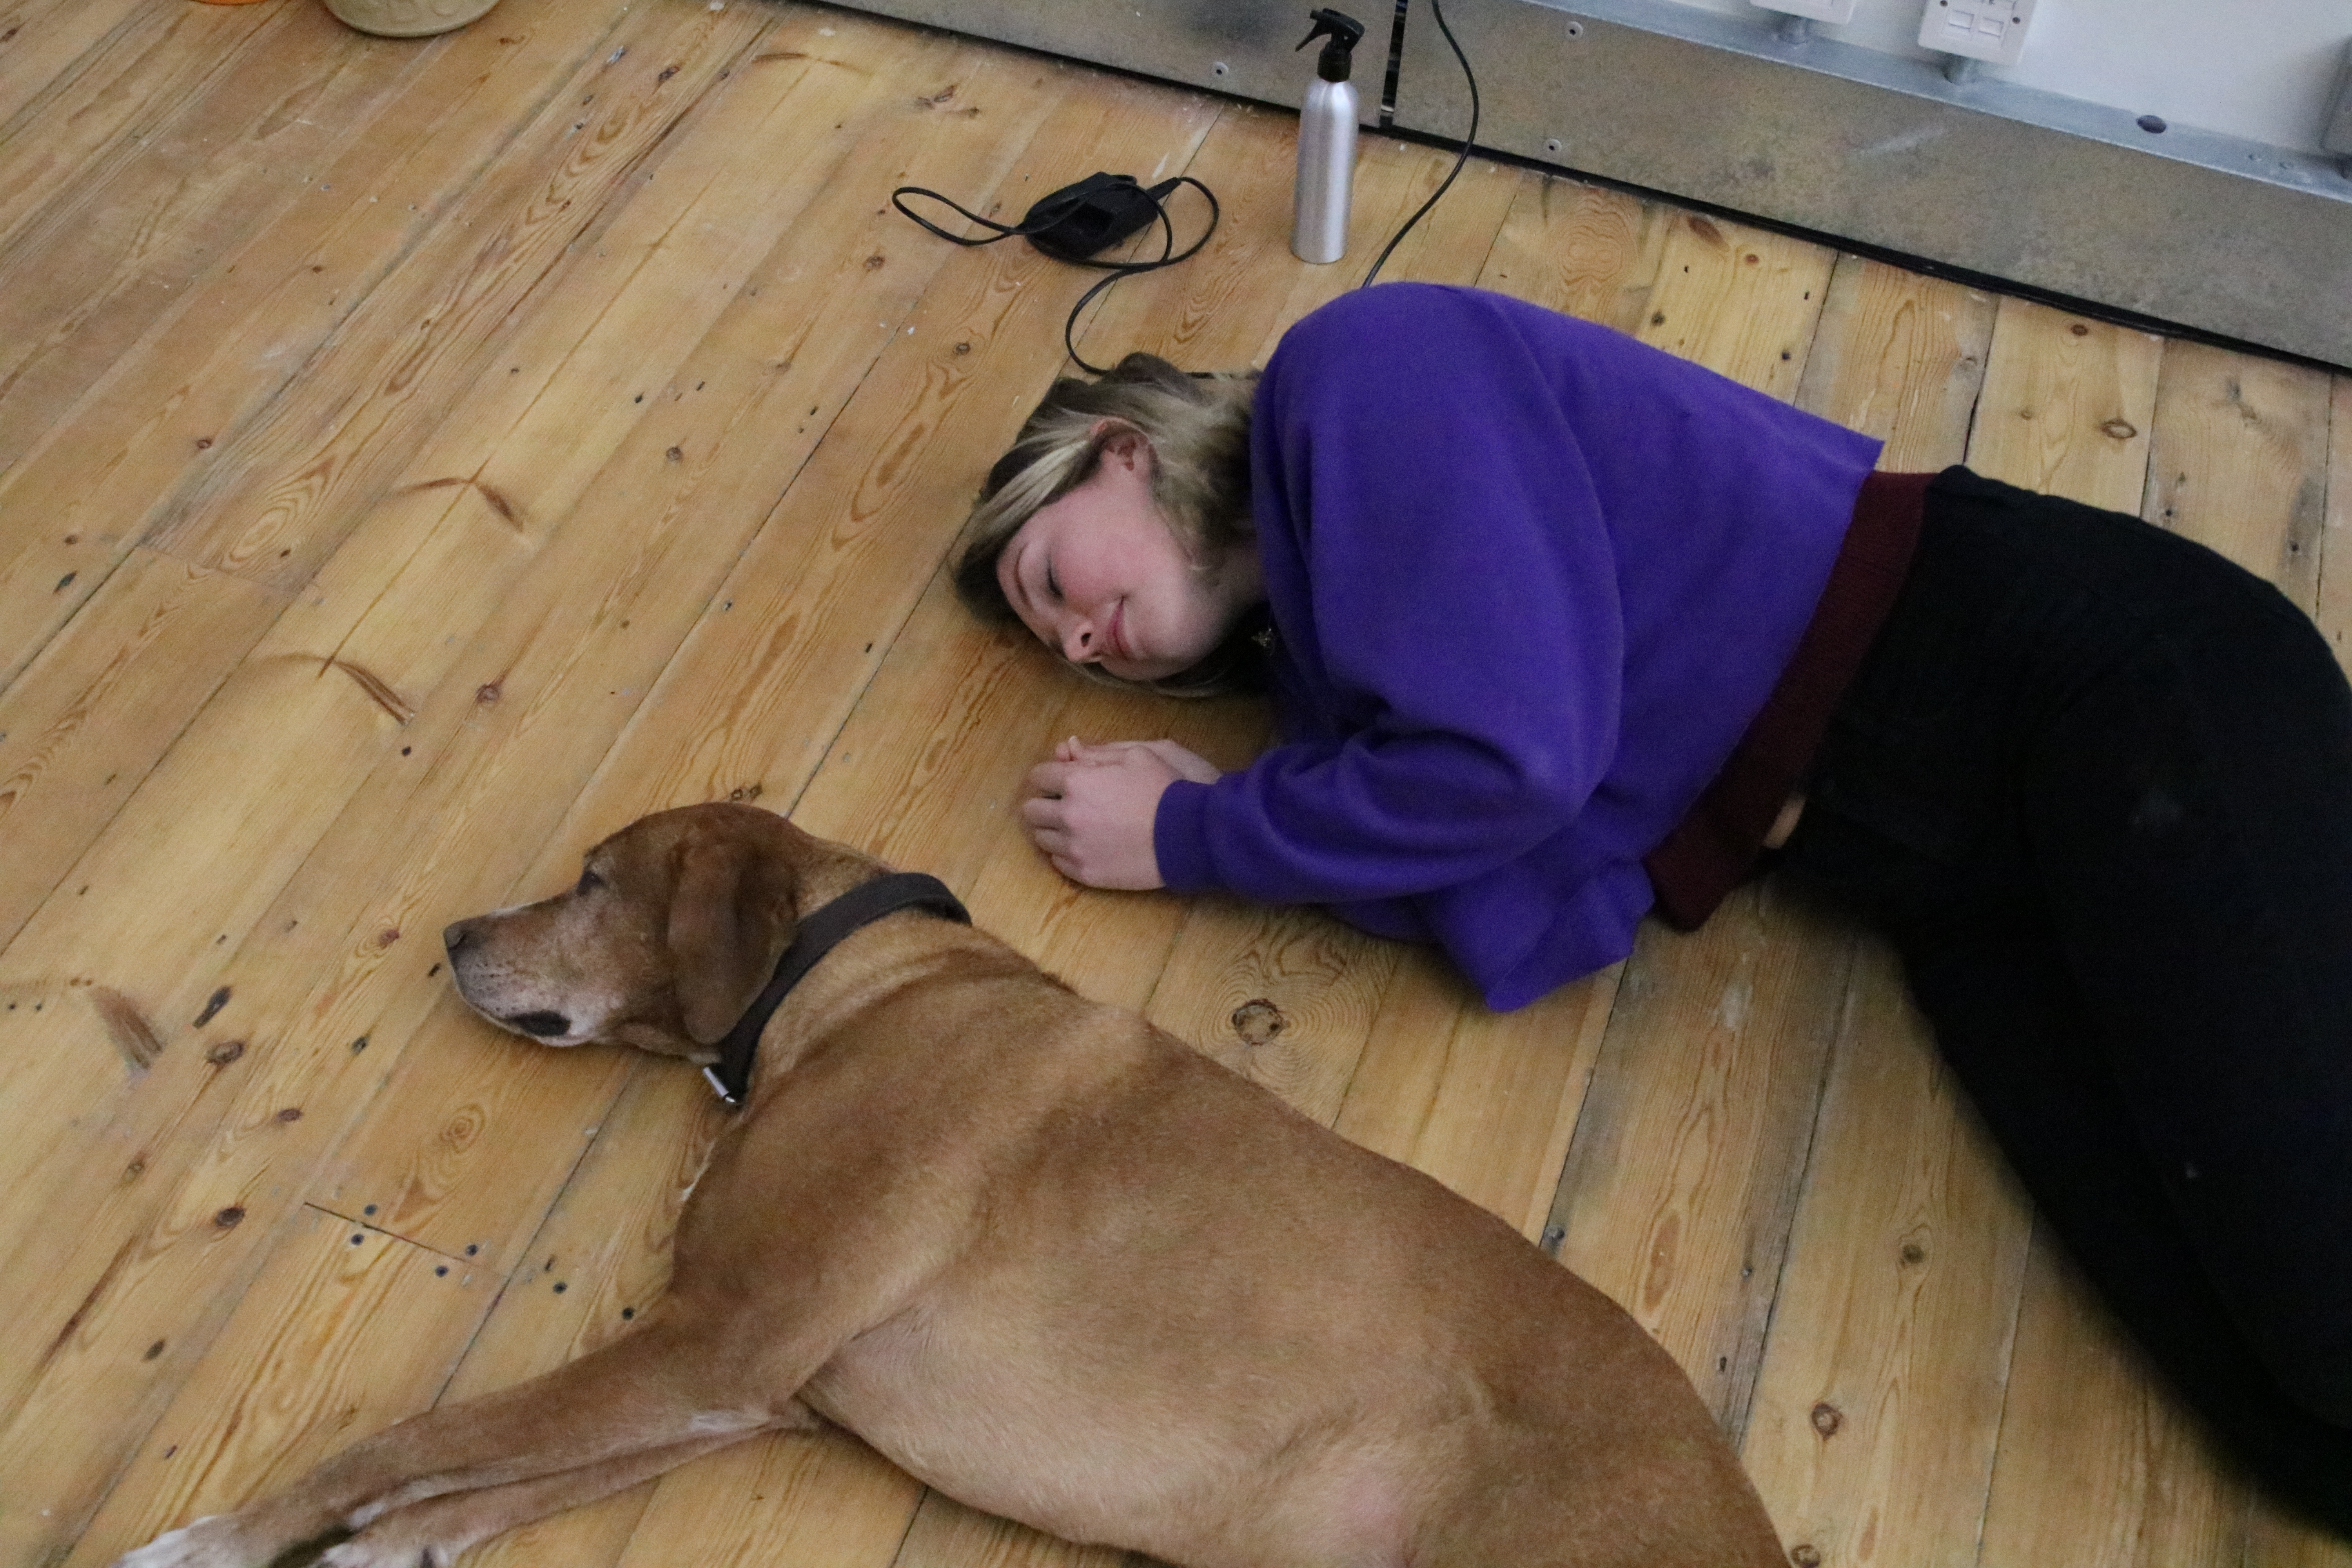 woman lying on floor with dog